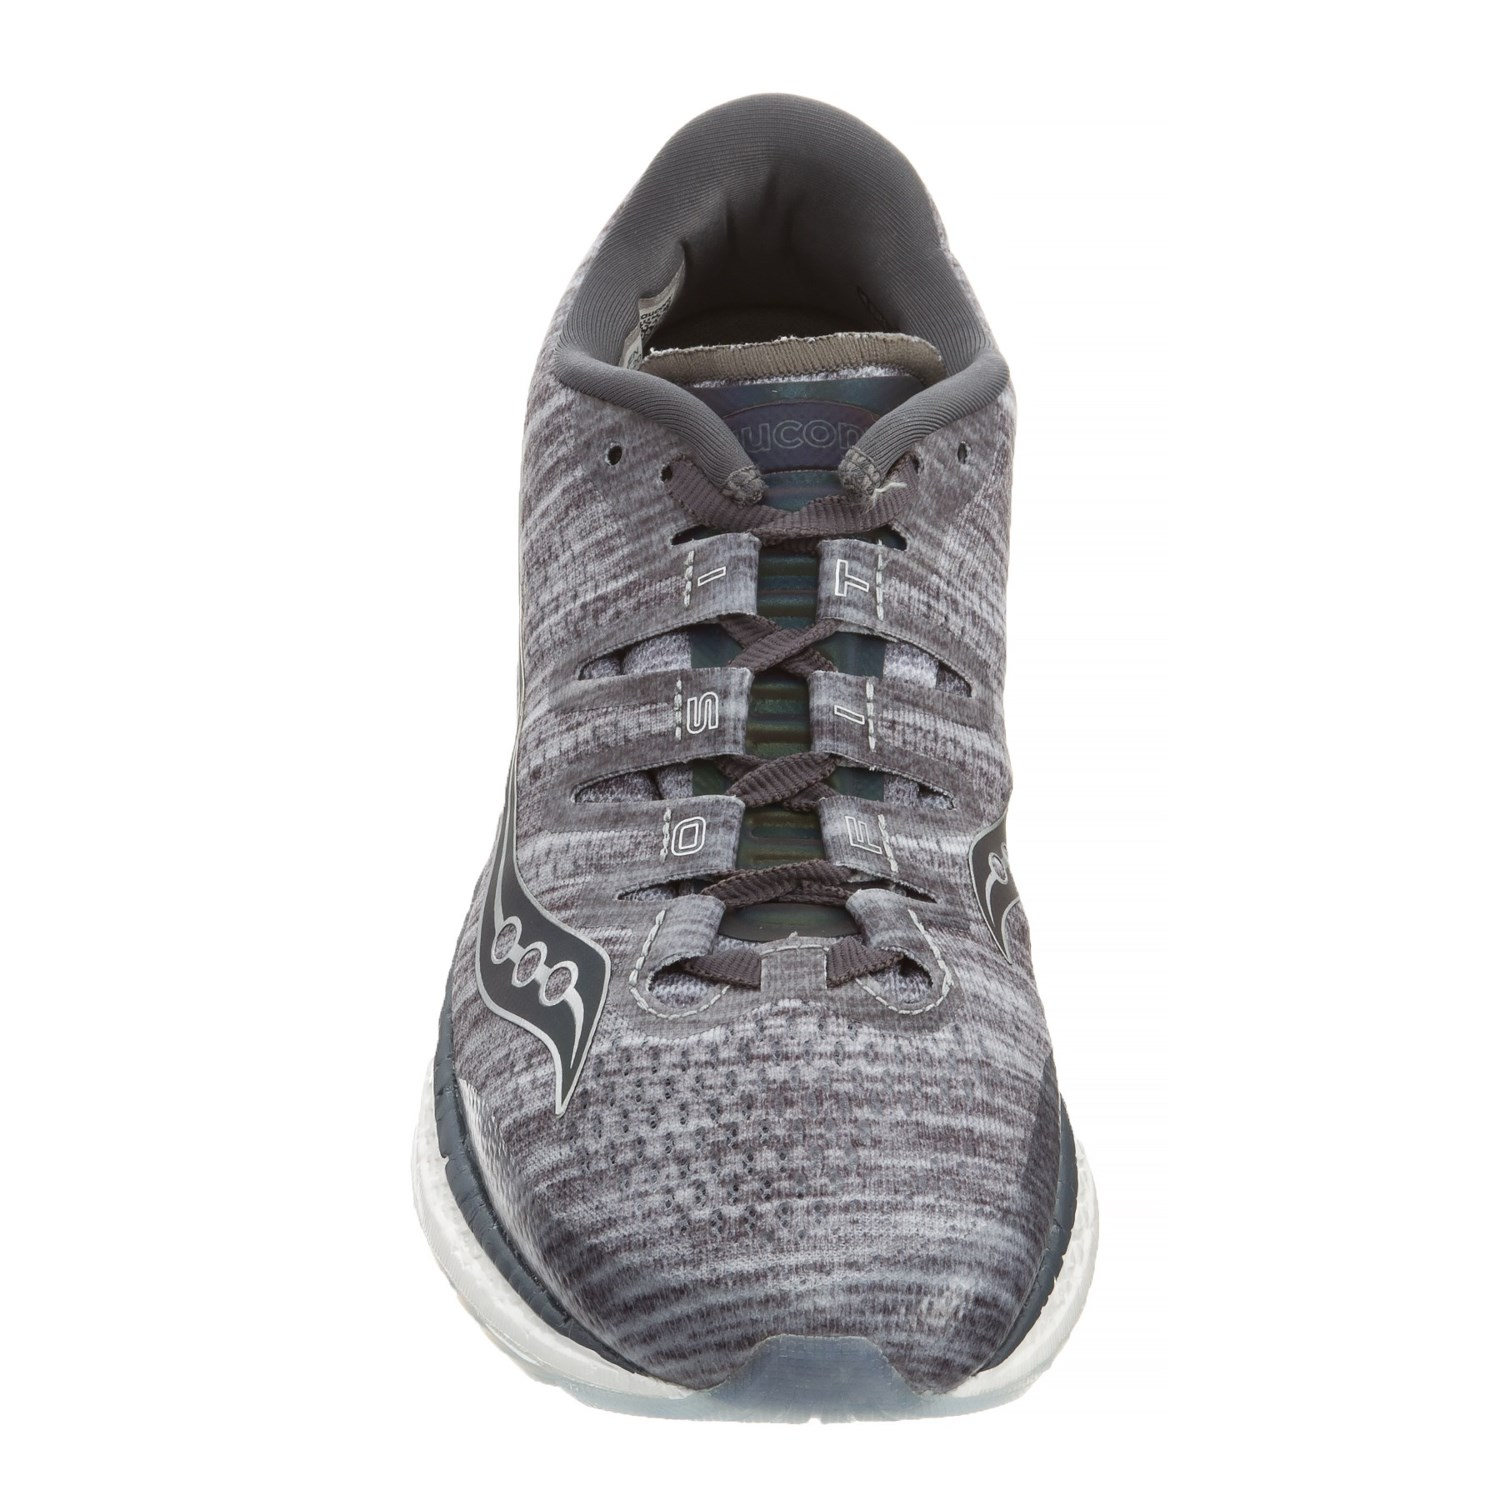 Saucony Freedom ISO Running Shoes (For Women) - Save 43% 752a49e0e